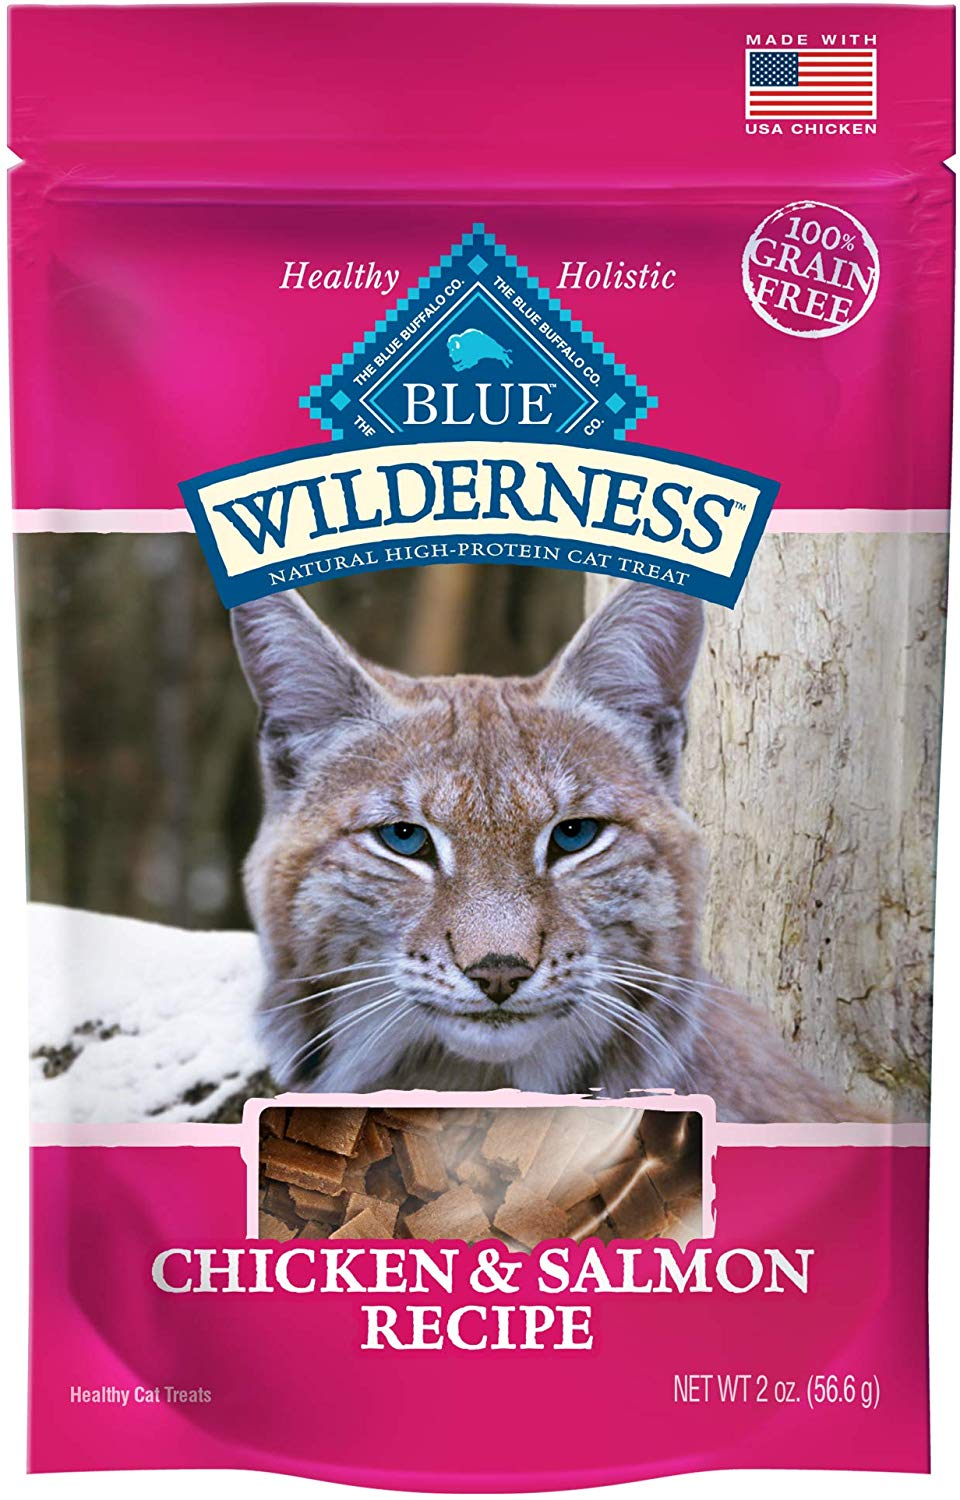 Blue Wilderness Grain-Free Chicken & Salmon Treats